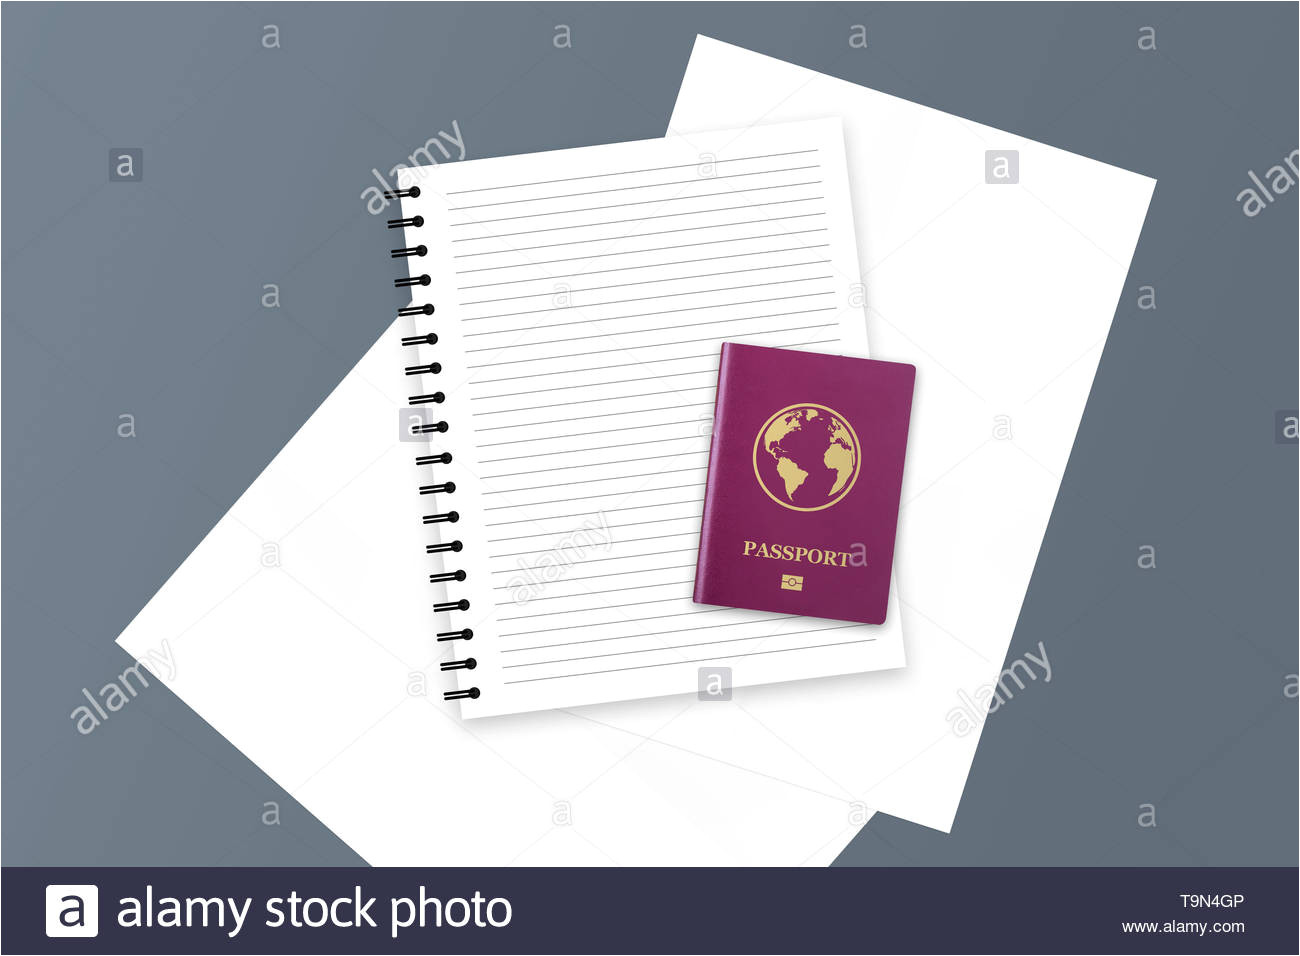 3d illustration of red realistic international passport id and document with copy space and blank notebook t9n4gp jpg